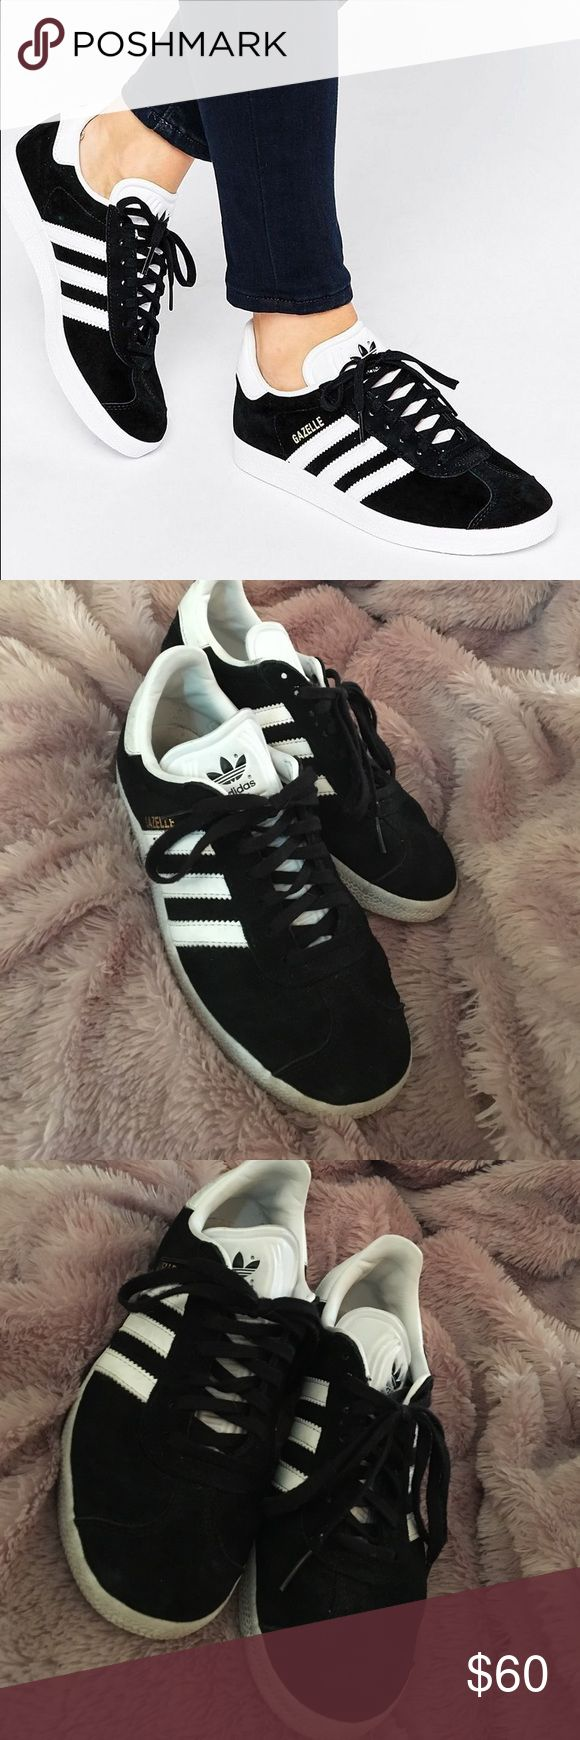 Adidas Black Gazelle Bottoms of shoe and whites of shoes are dirtied up adidas Shoes